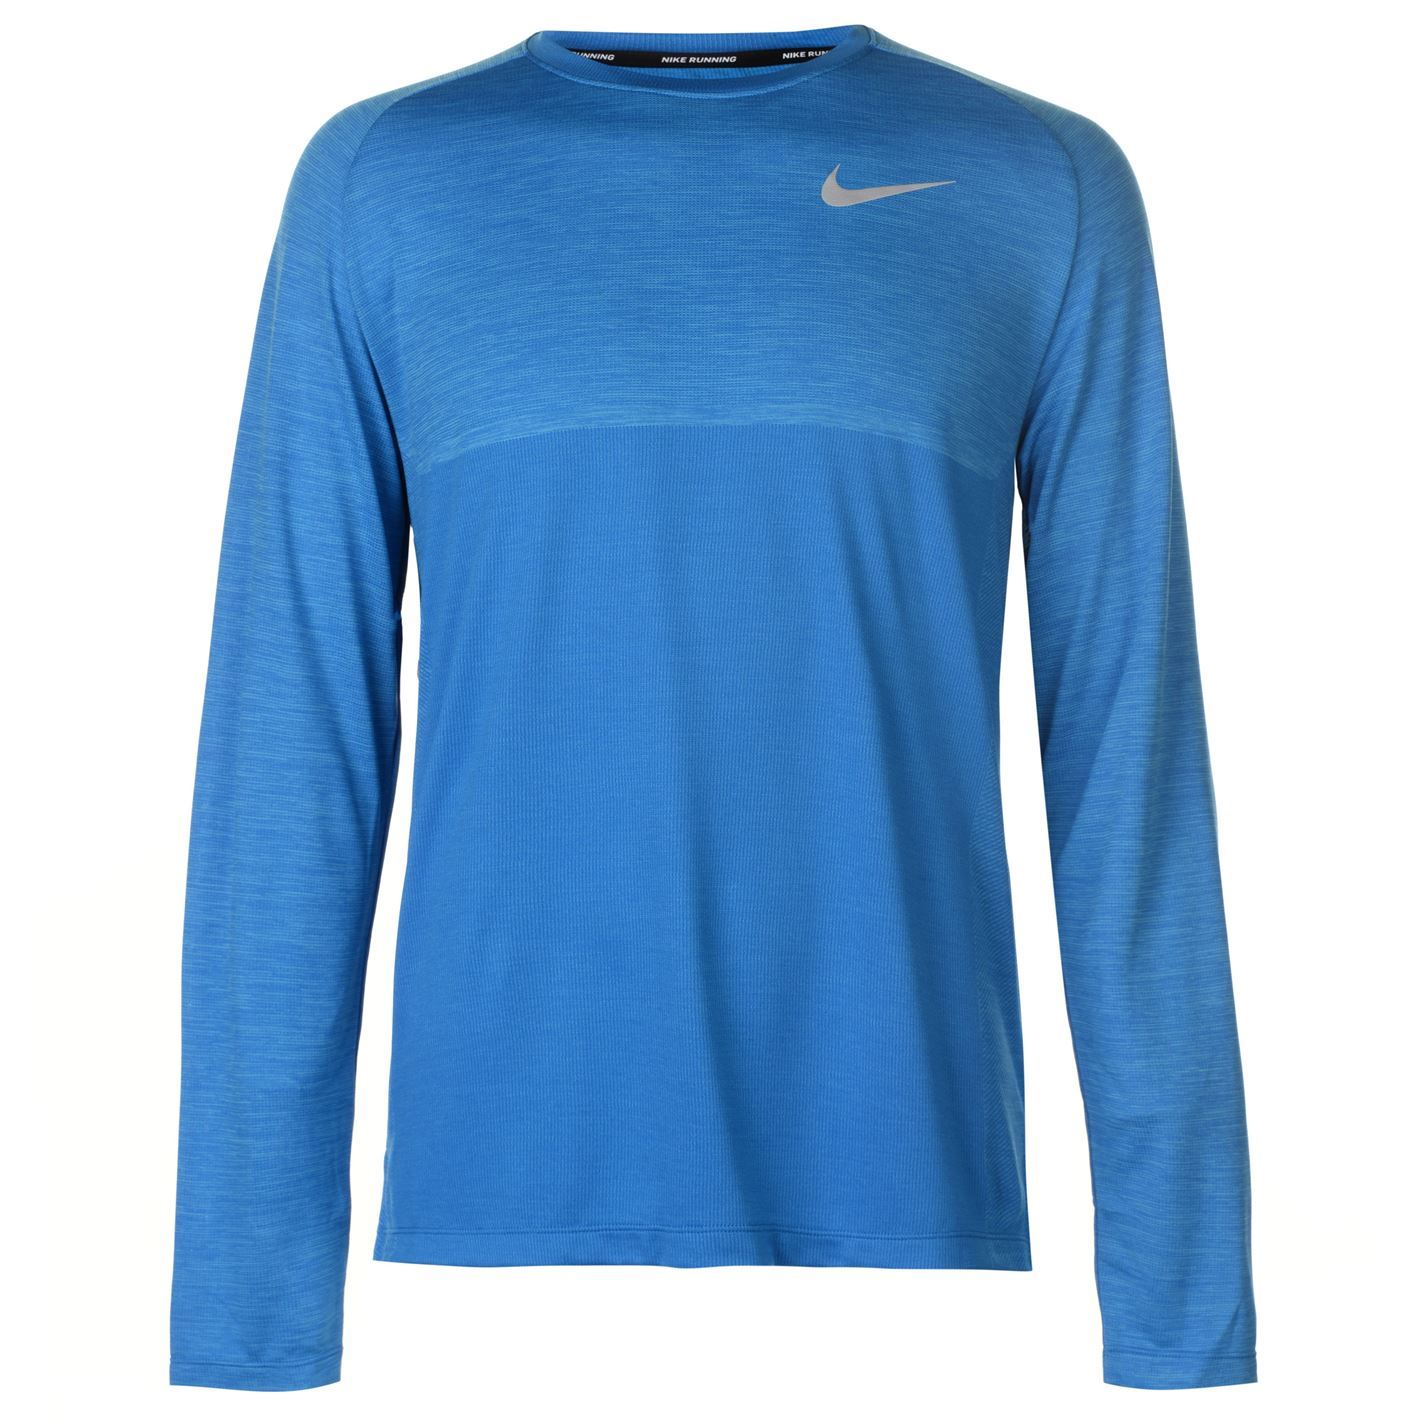 b1d77950 Details about Nike Medal Long Sleeve Running Top Mens Blue Jogging Fitness  Workout T-Shirt Tee